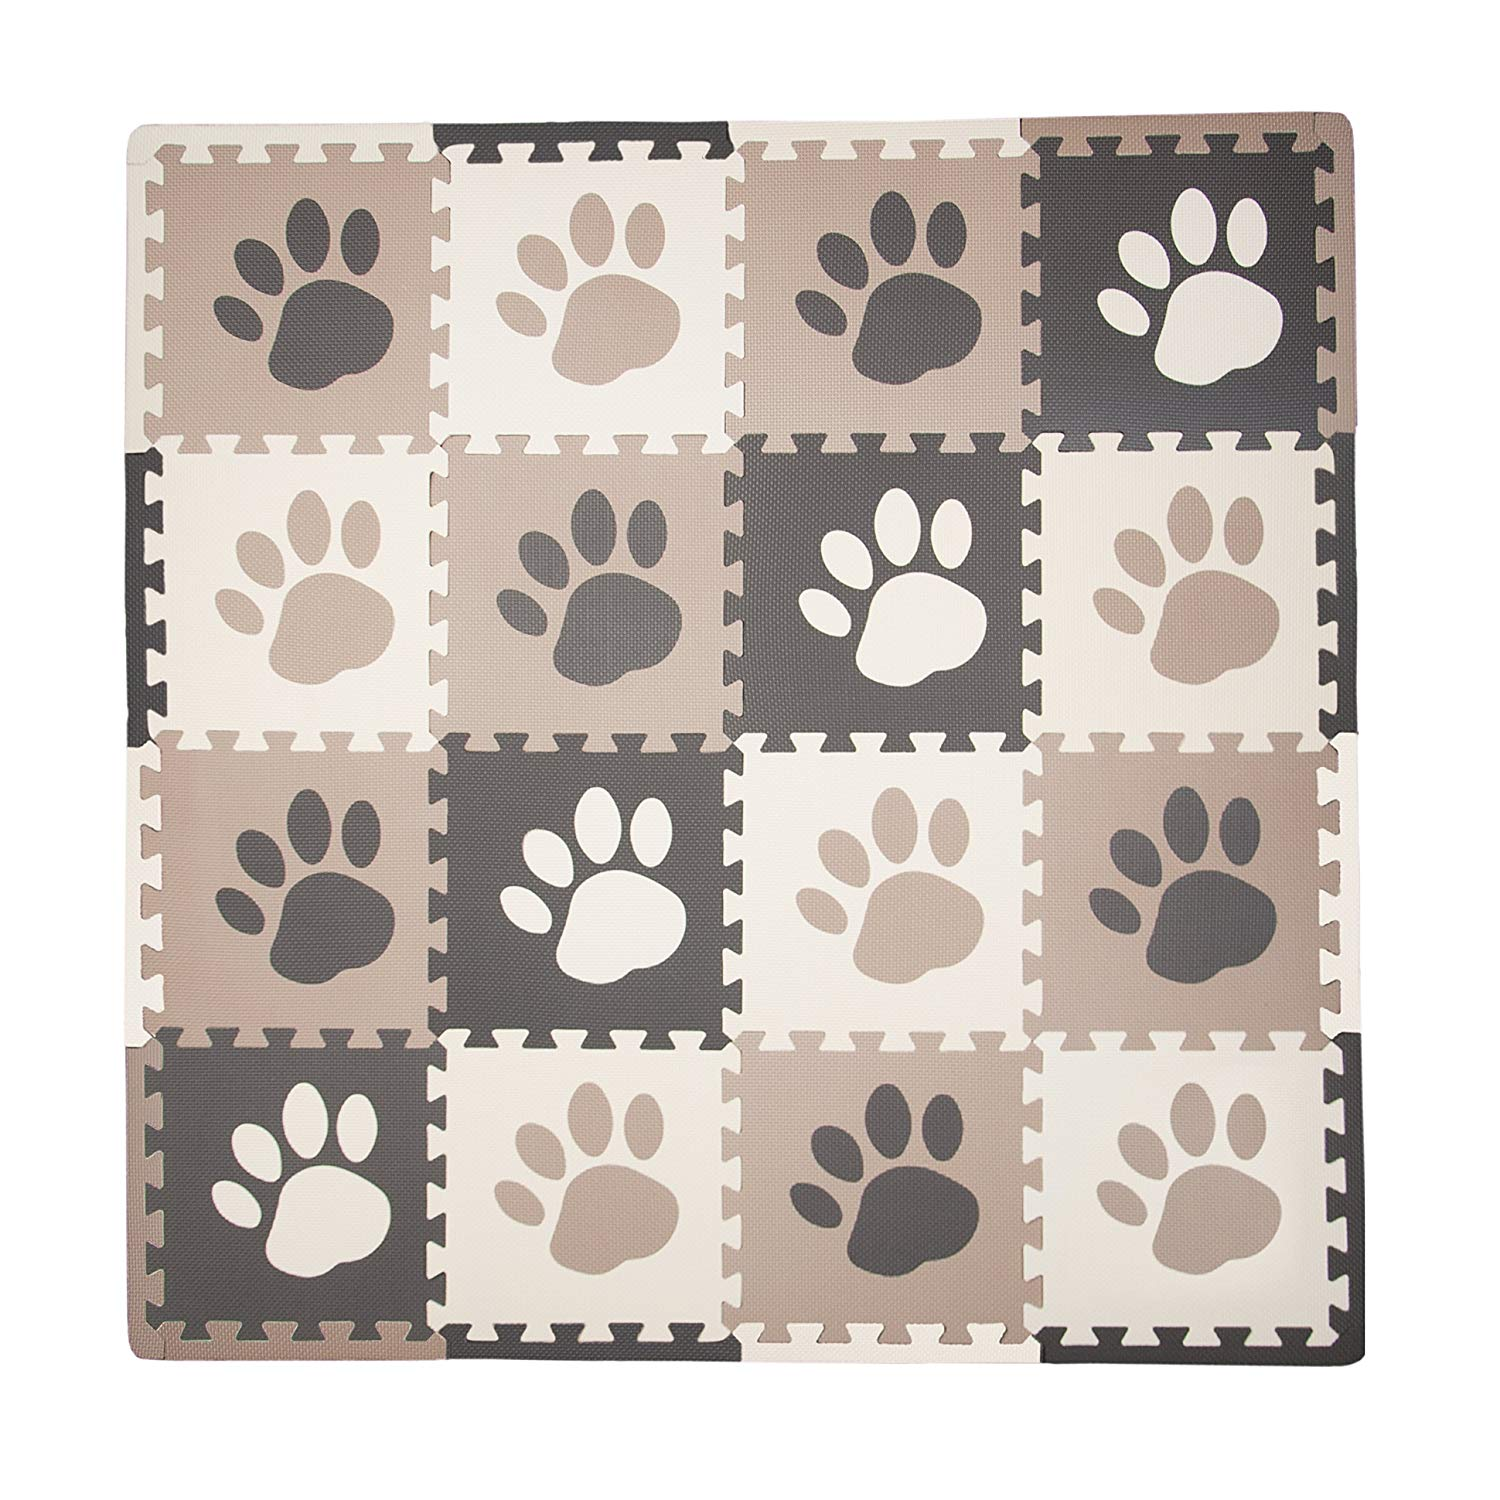 16 Sq Ft Pawprint Playmat Set, Brown Tadpoles